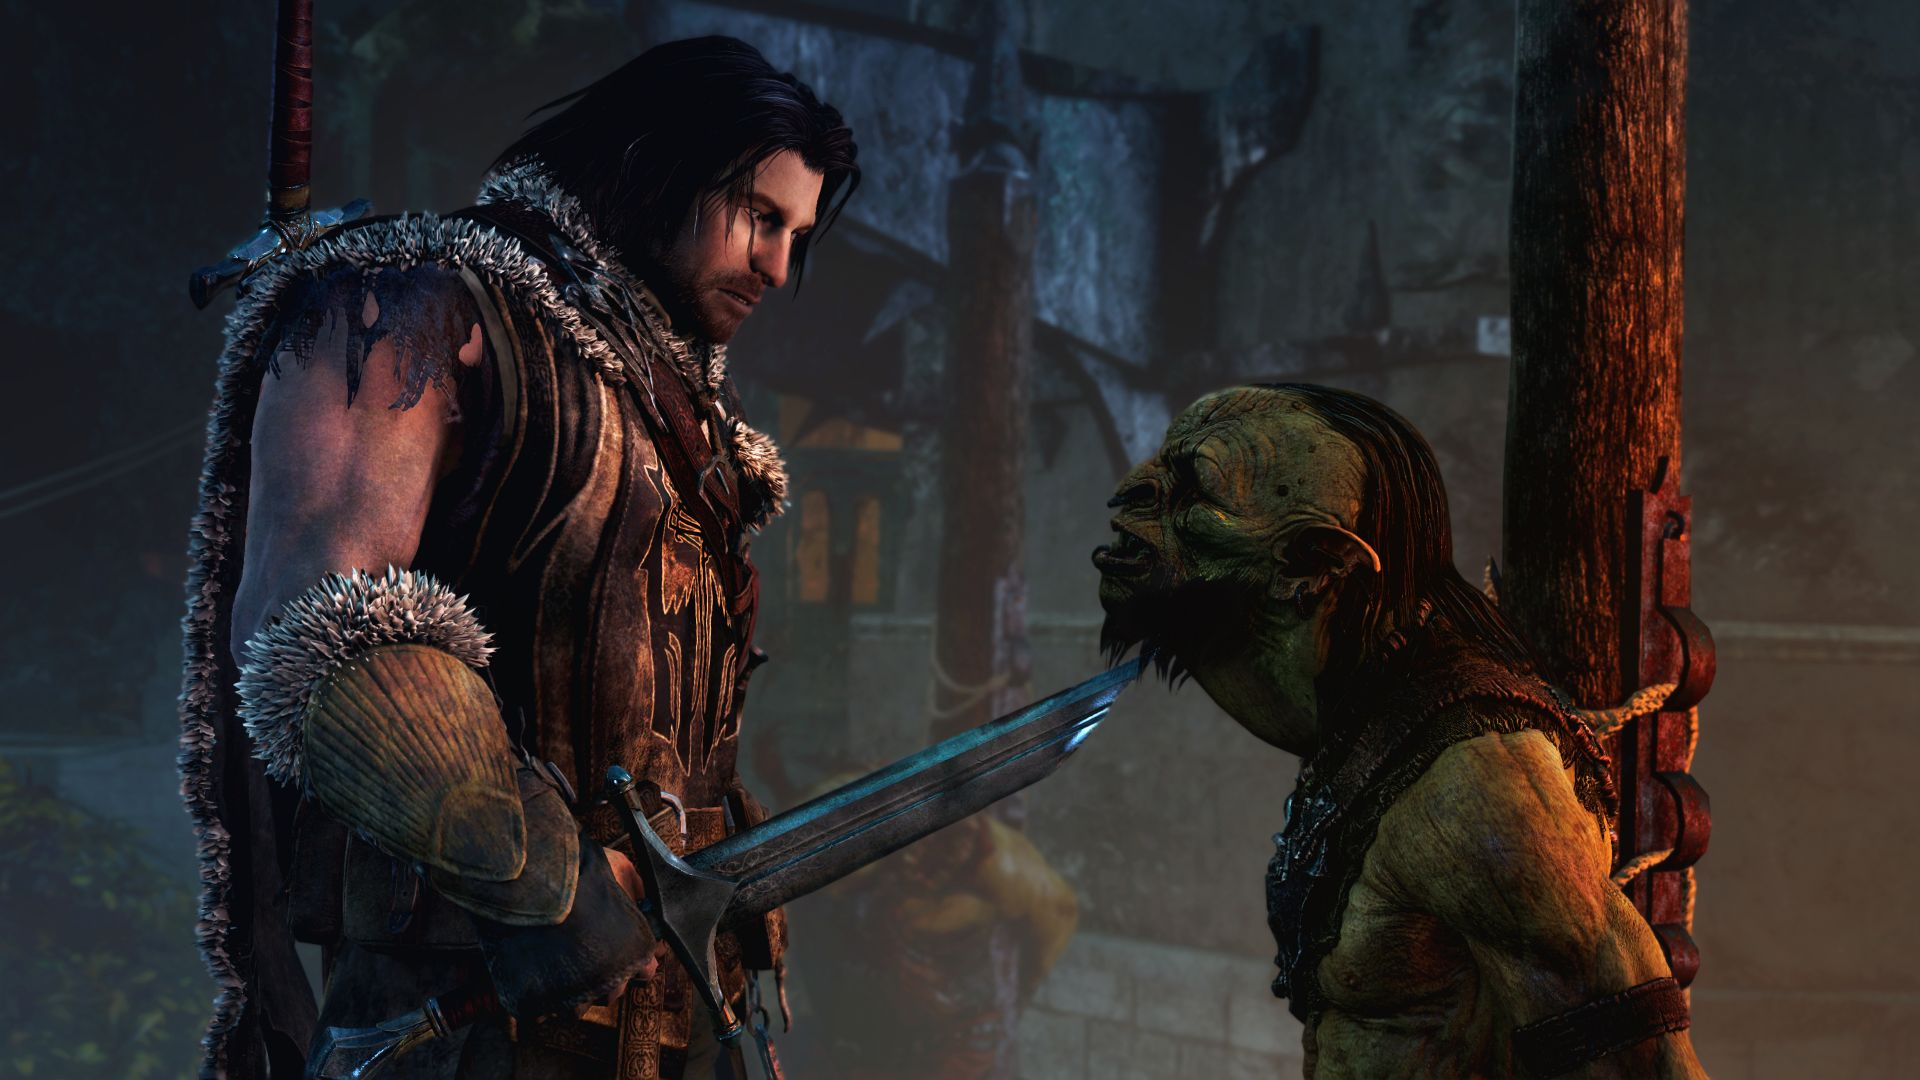 Middle-earth: Shadow of Mordor – where should the games explore next?